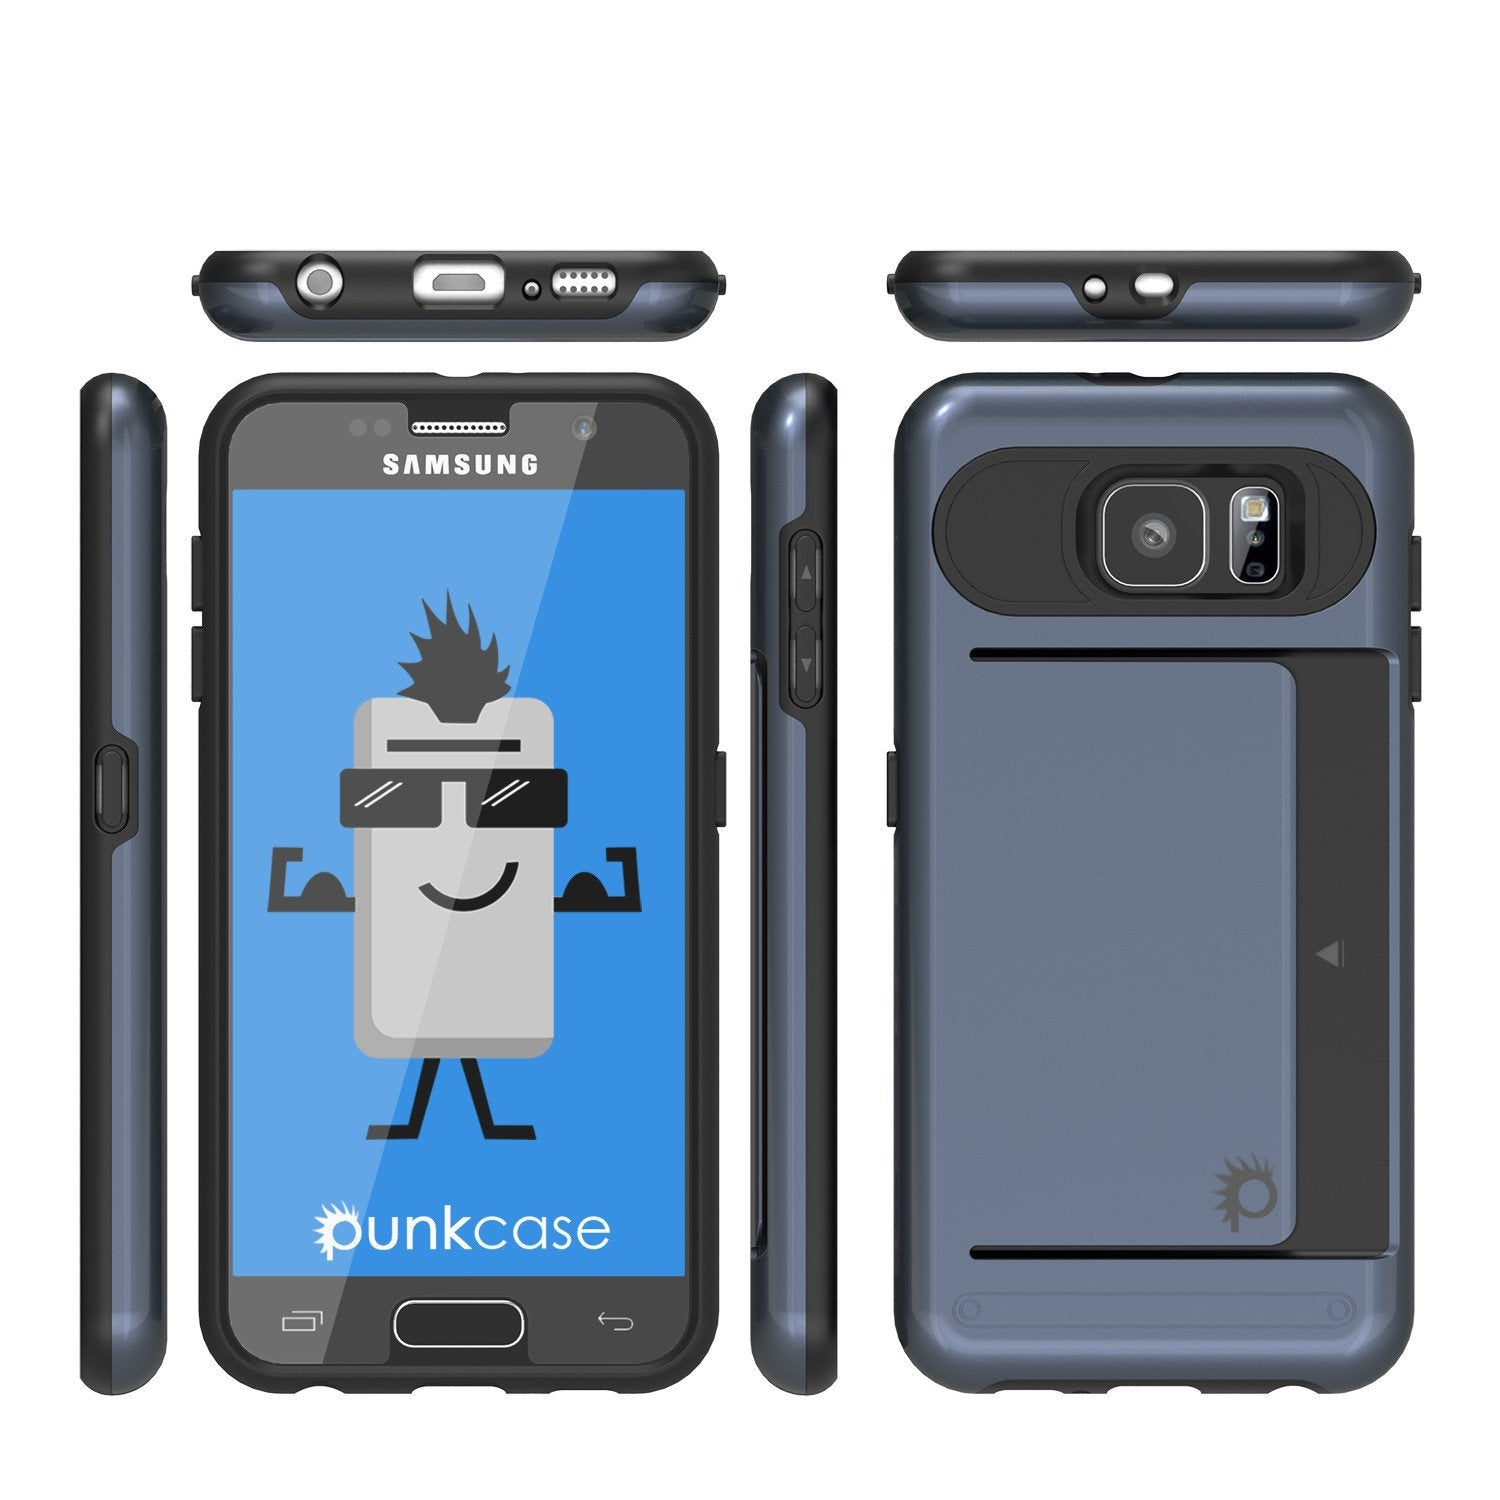 Galaxy s6 Case PunkCase CLUTCH Navy Series Slim Armor Soft Cover Case w/ Tempered Glass